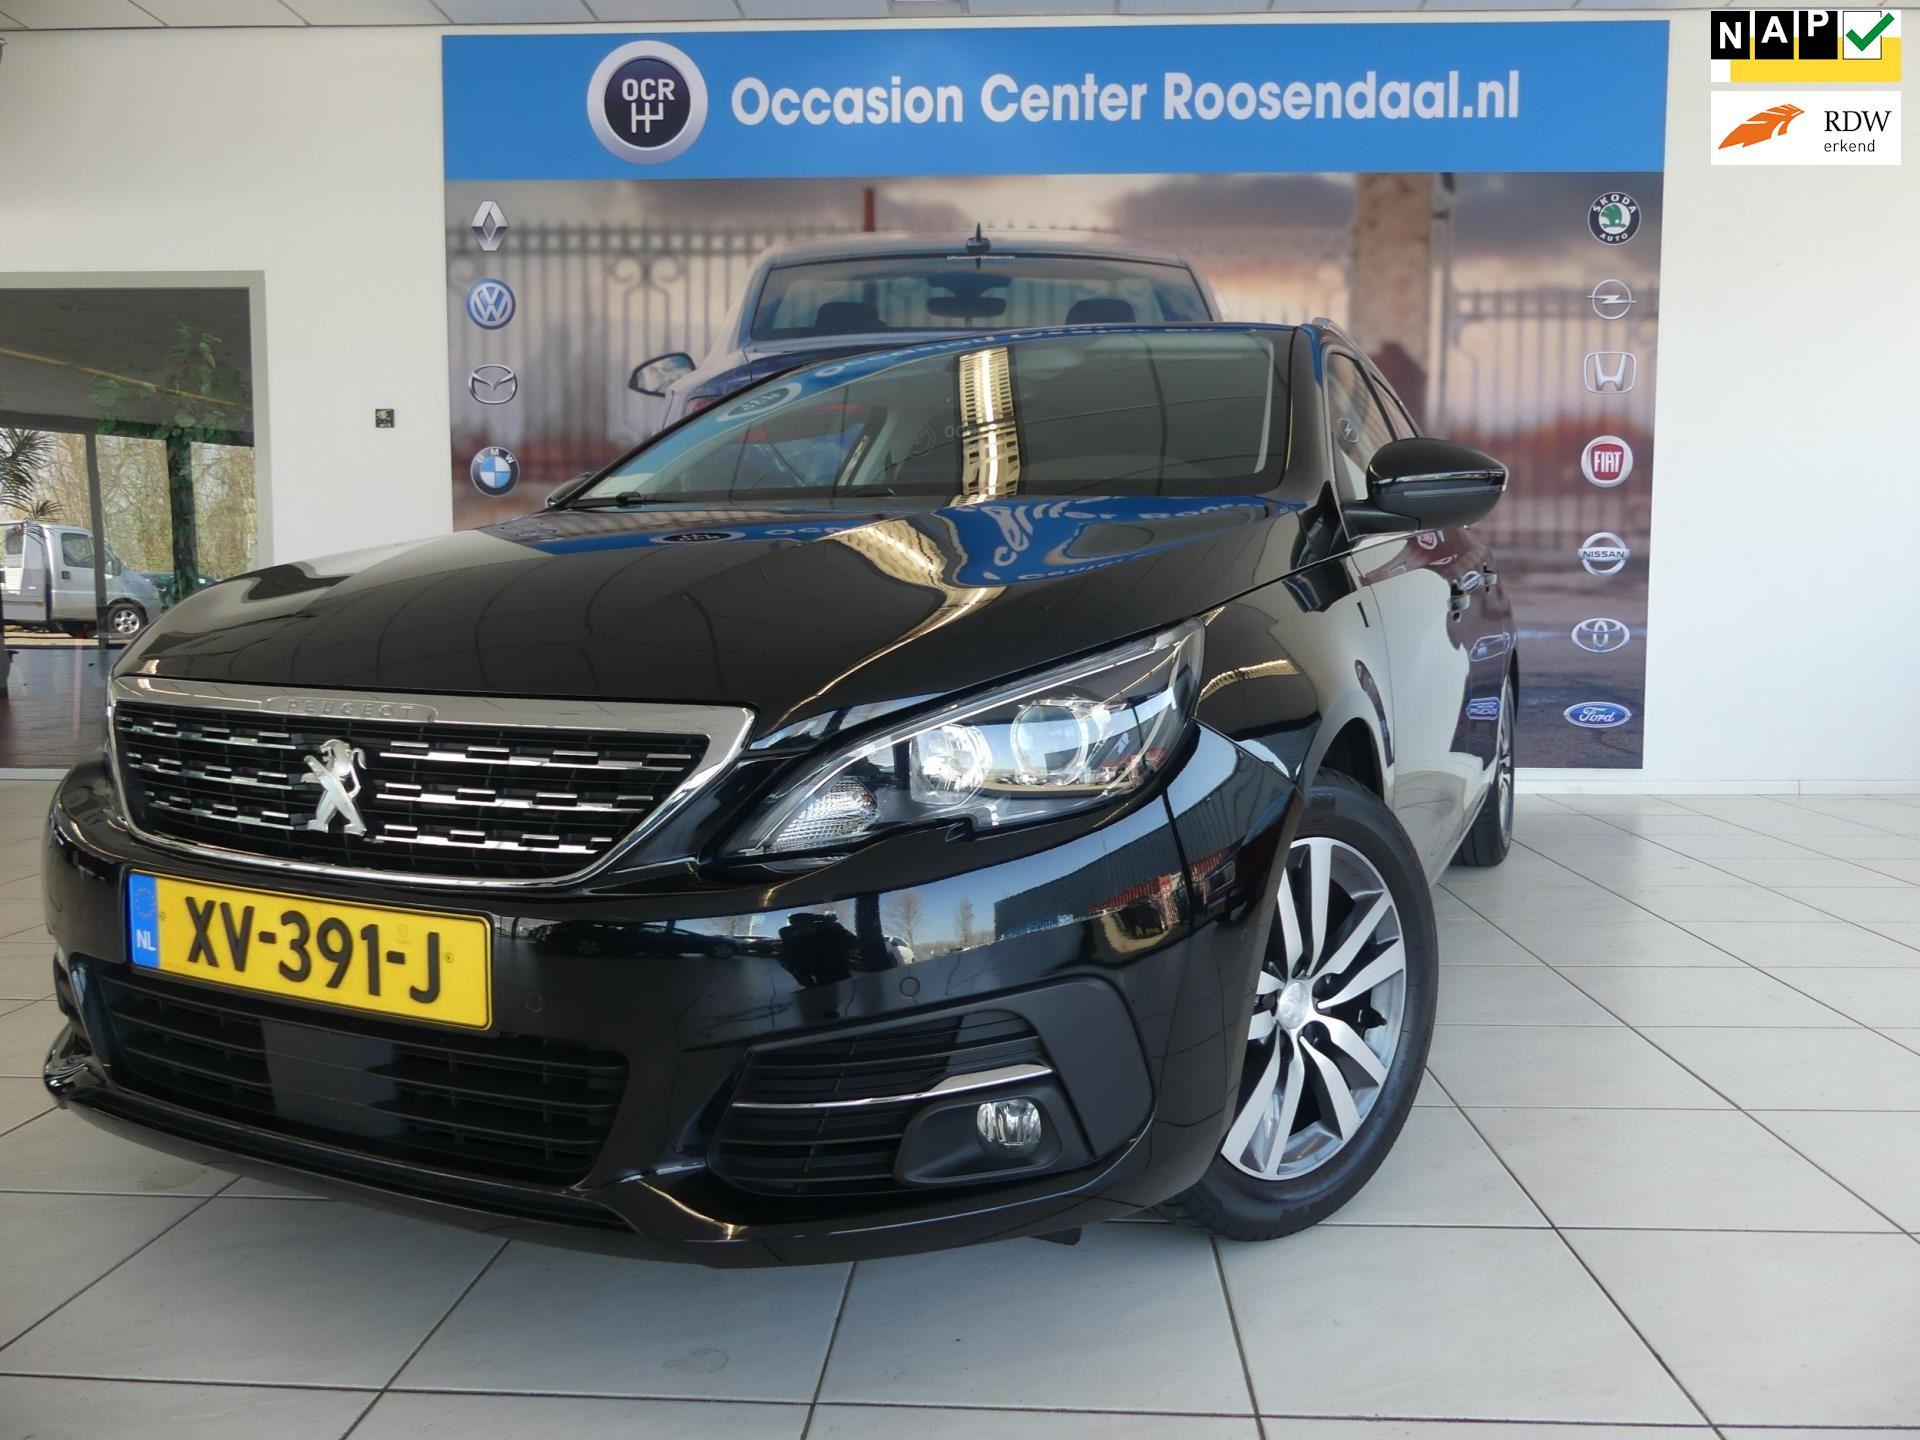 Peugeot 308 SW occasion - Occasion Center Roosendaal